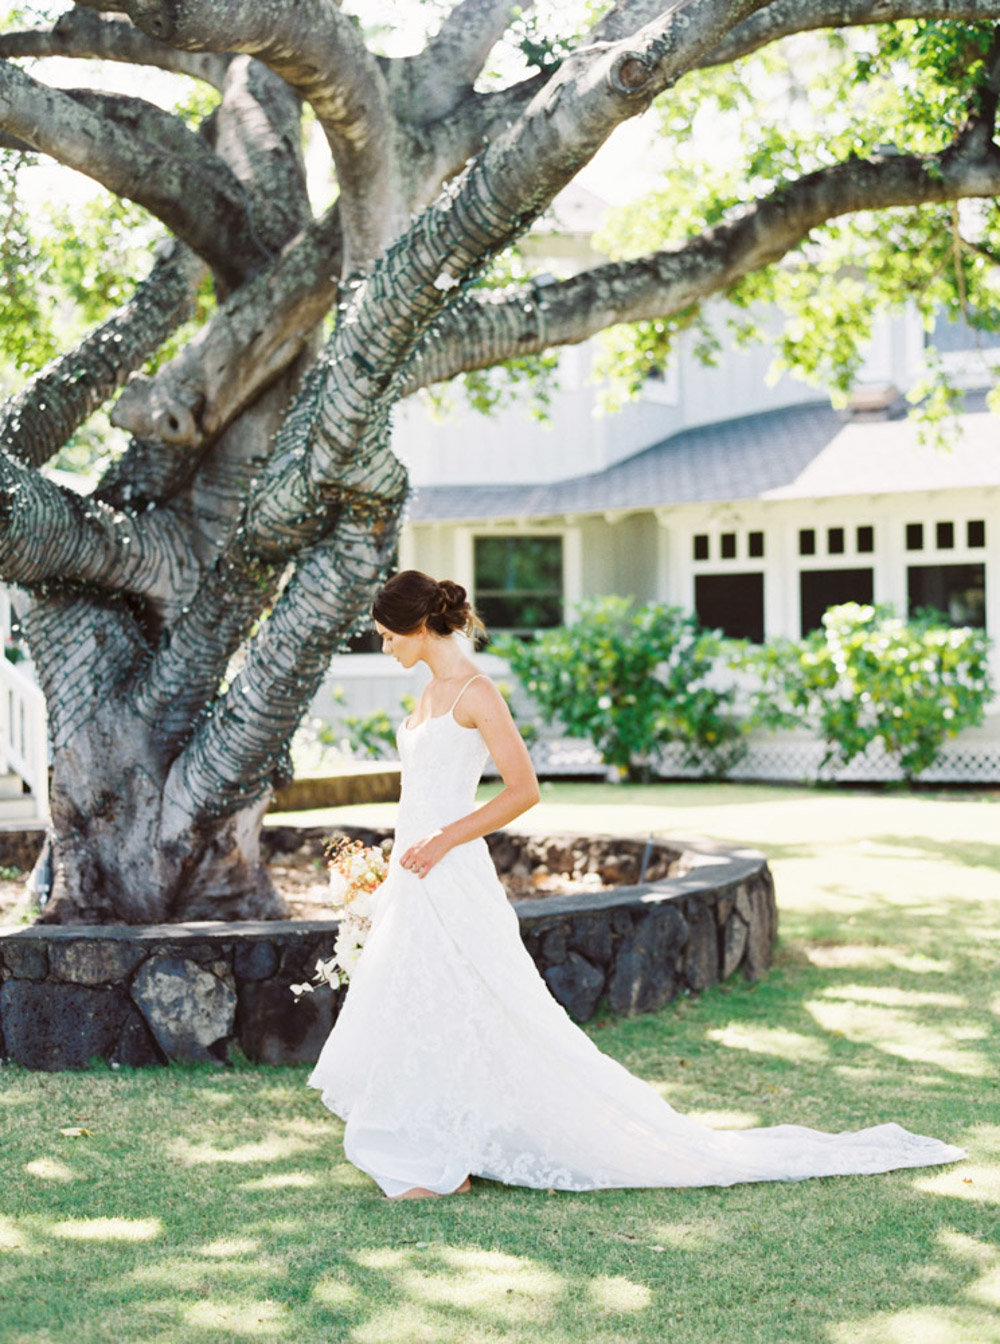 Hawaii Destination Wedding Photographer Sheri McMahon - Fine Art Film Tropical Hawaii Wedding Inspiration-00041